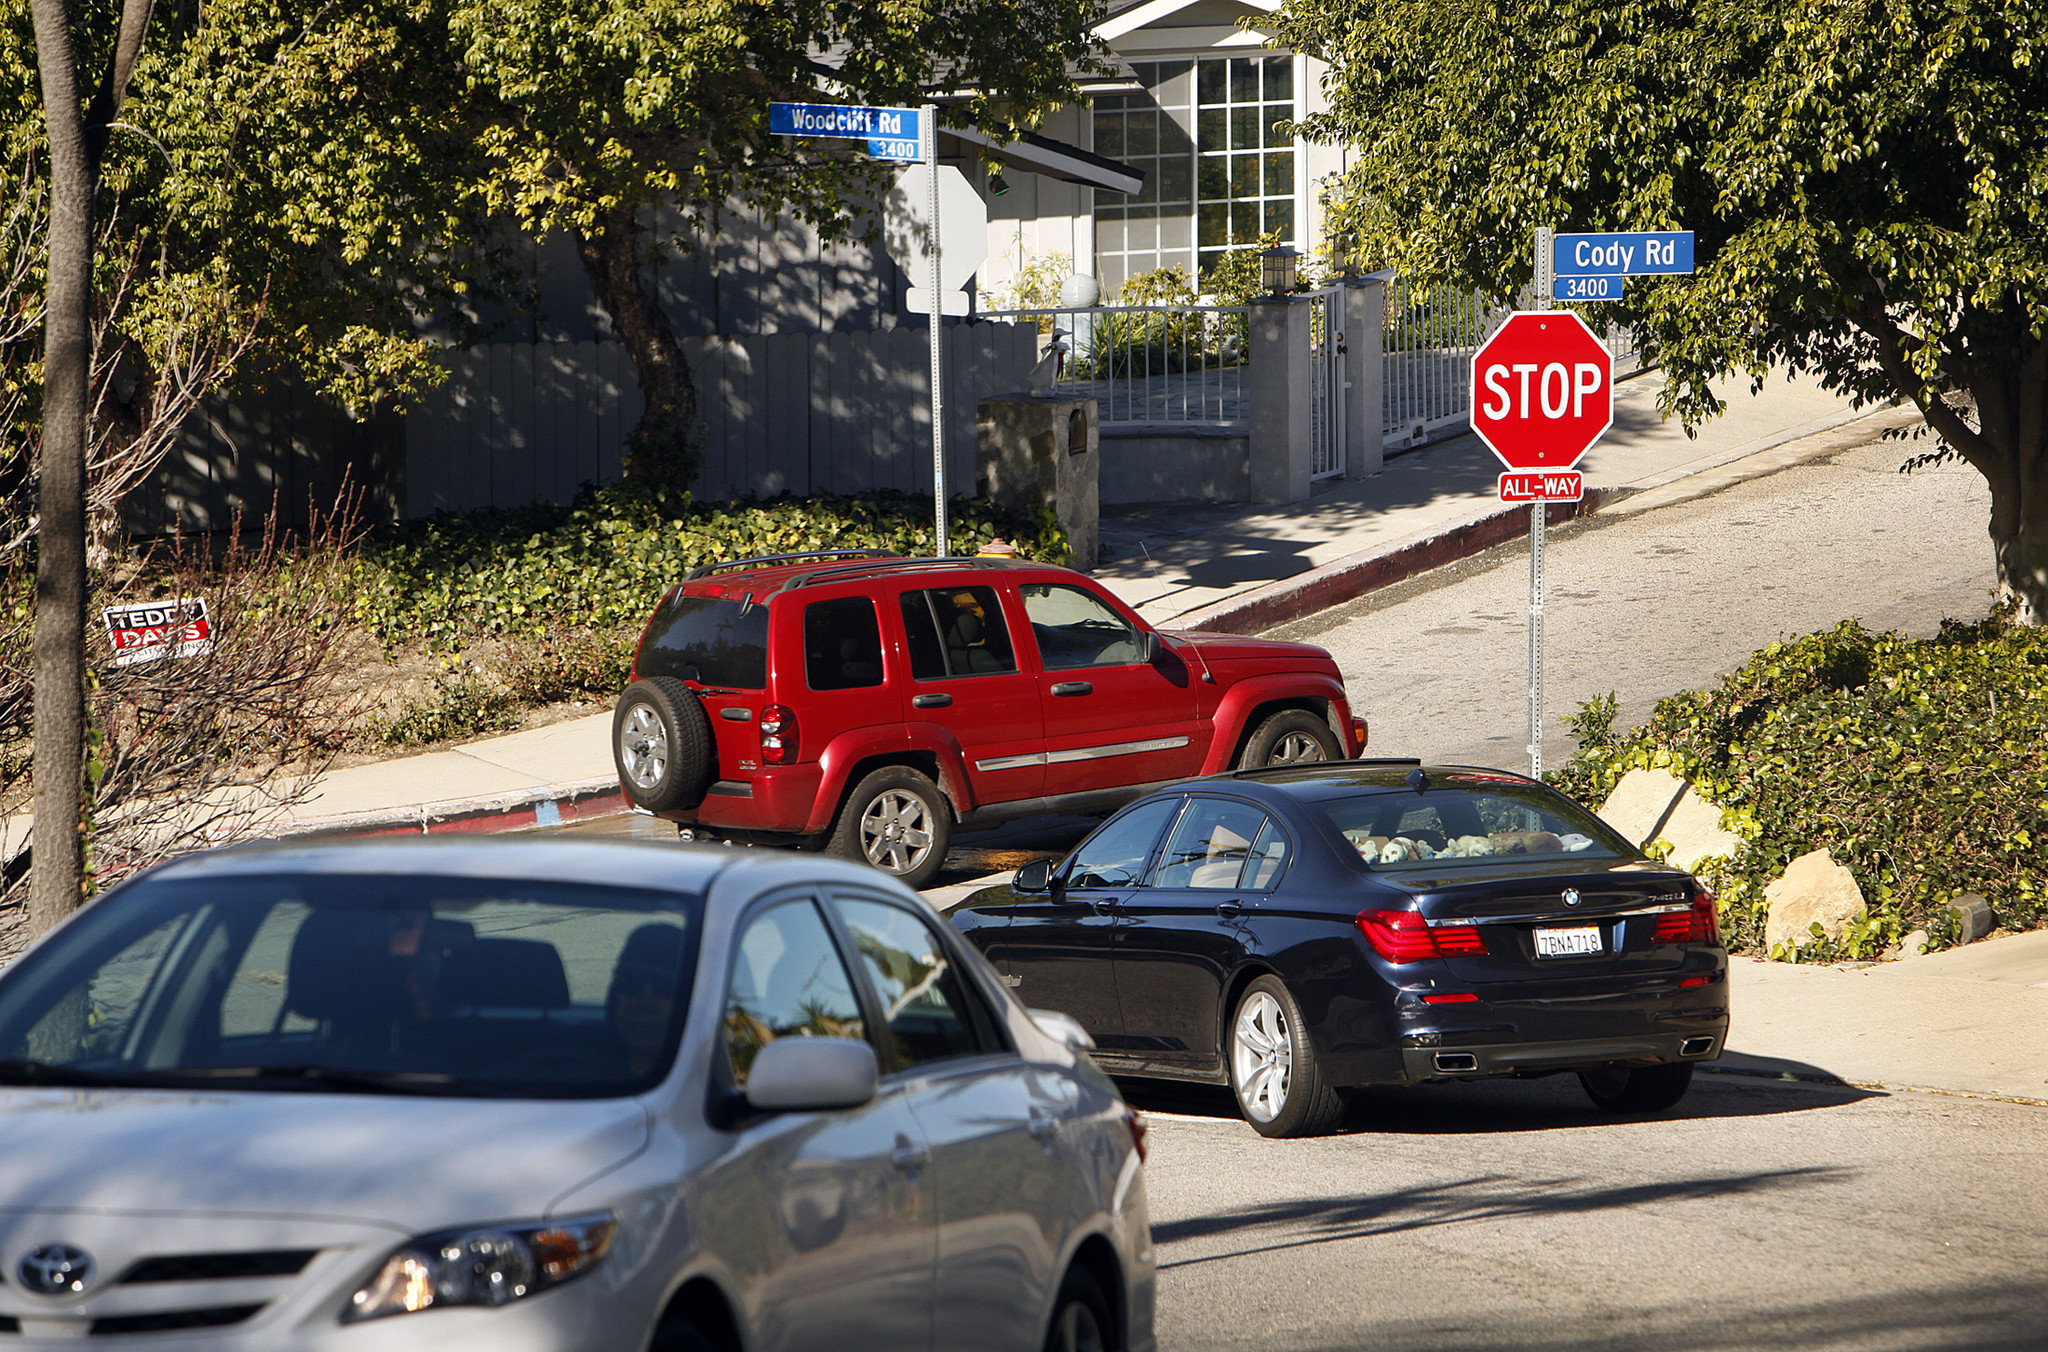 How An App Destroyed Their Streets: Readers Count The Waze La Times